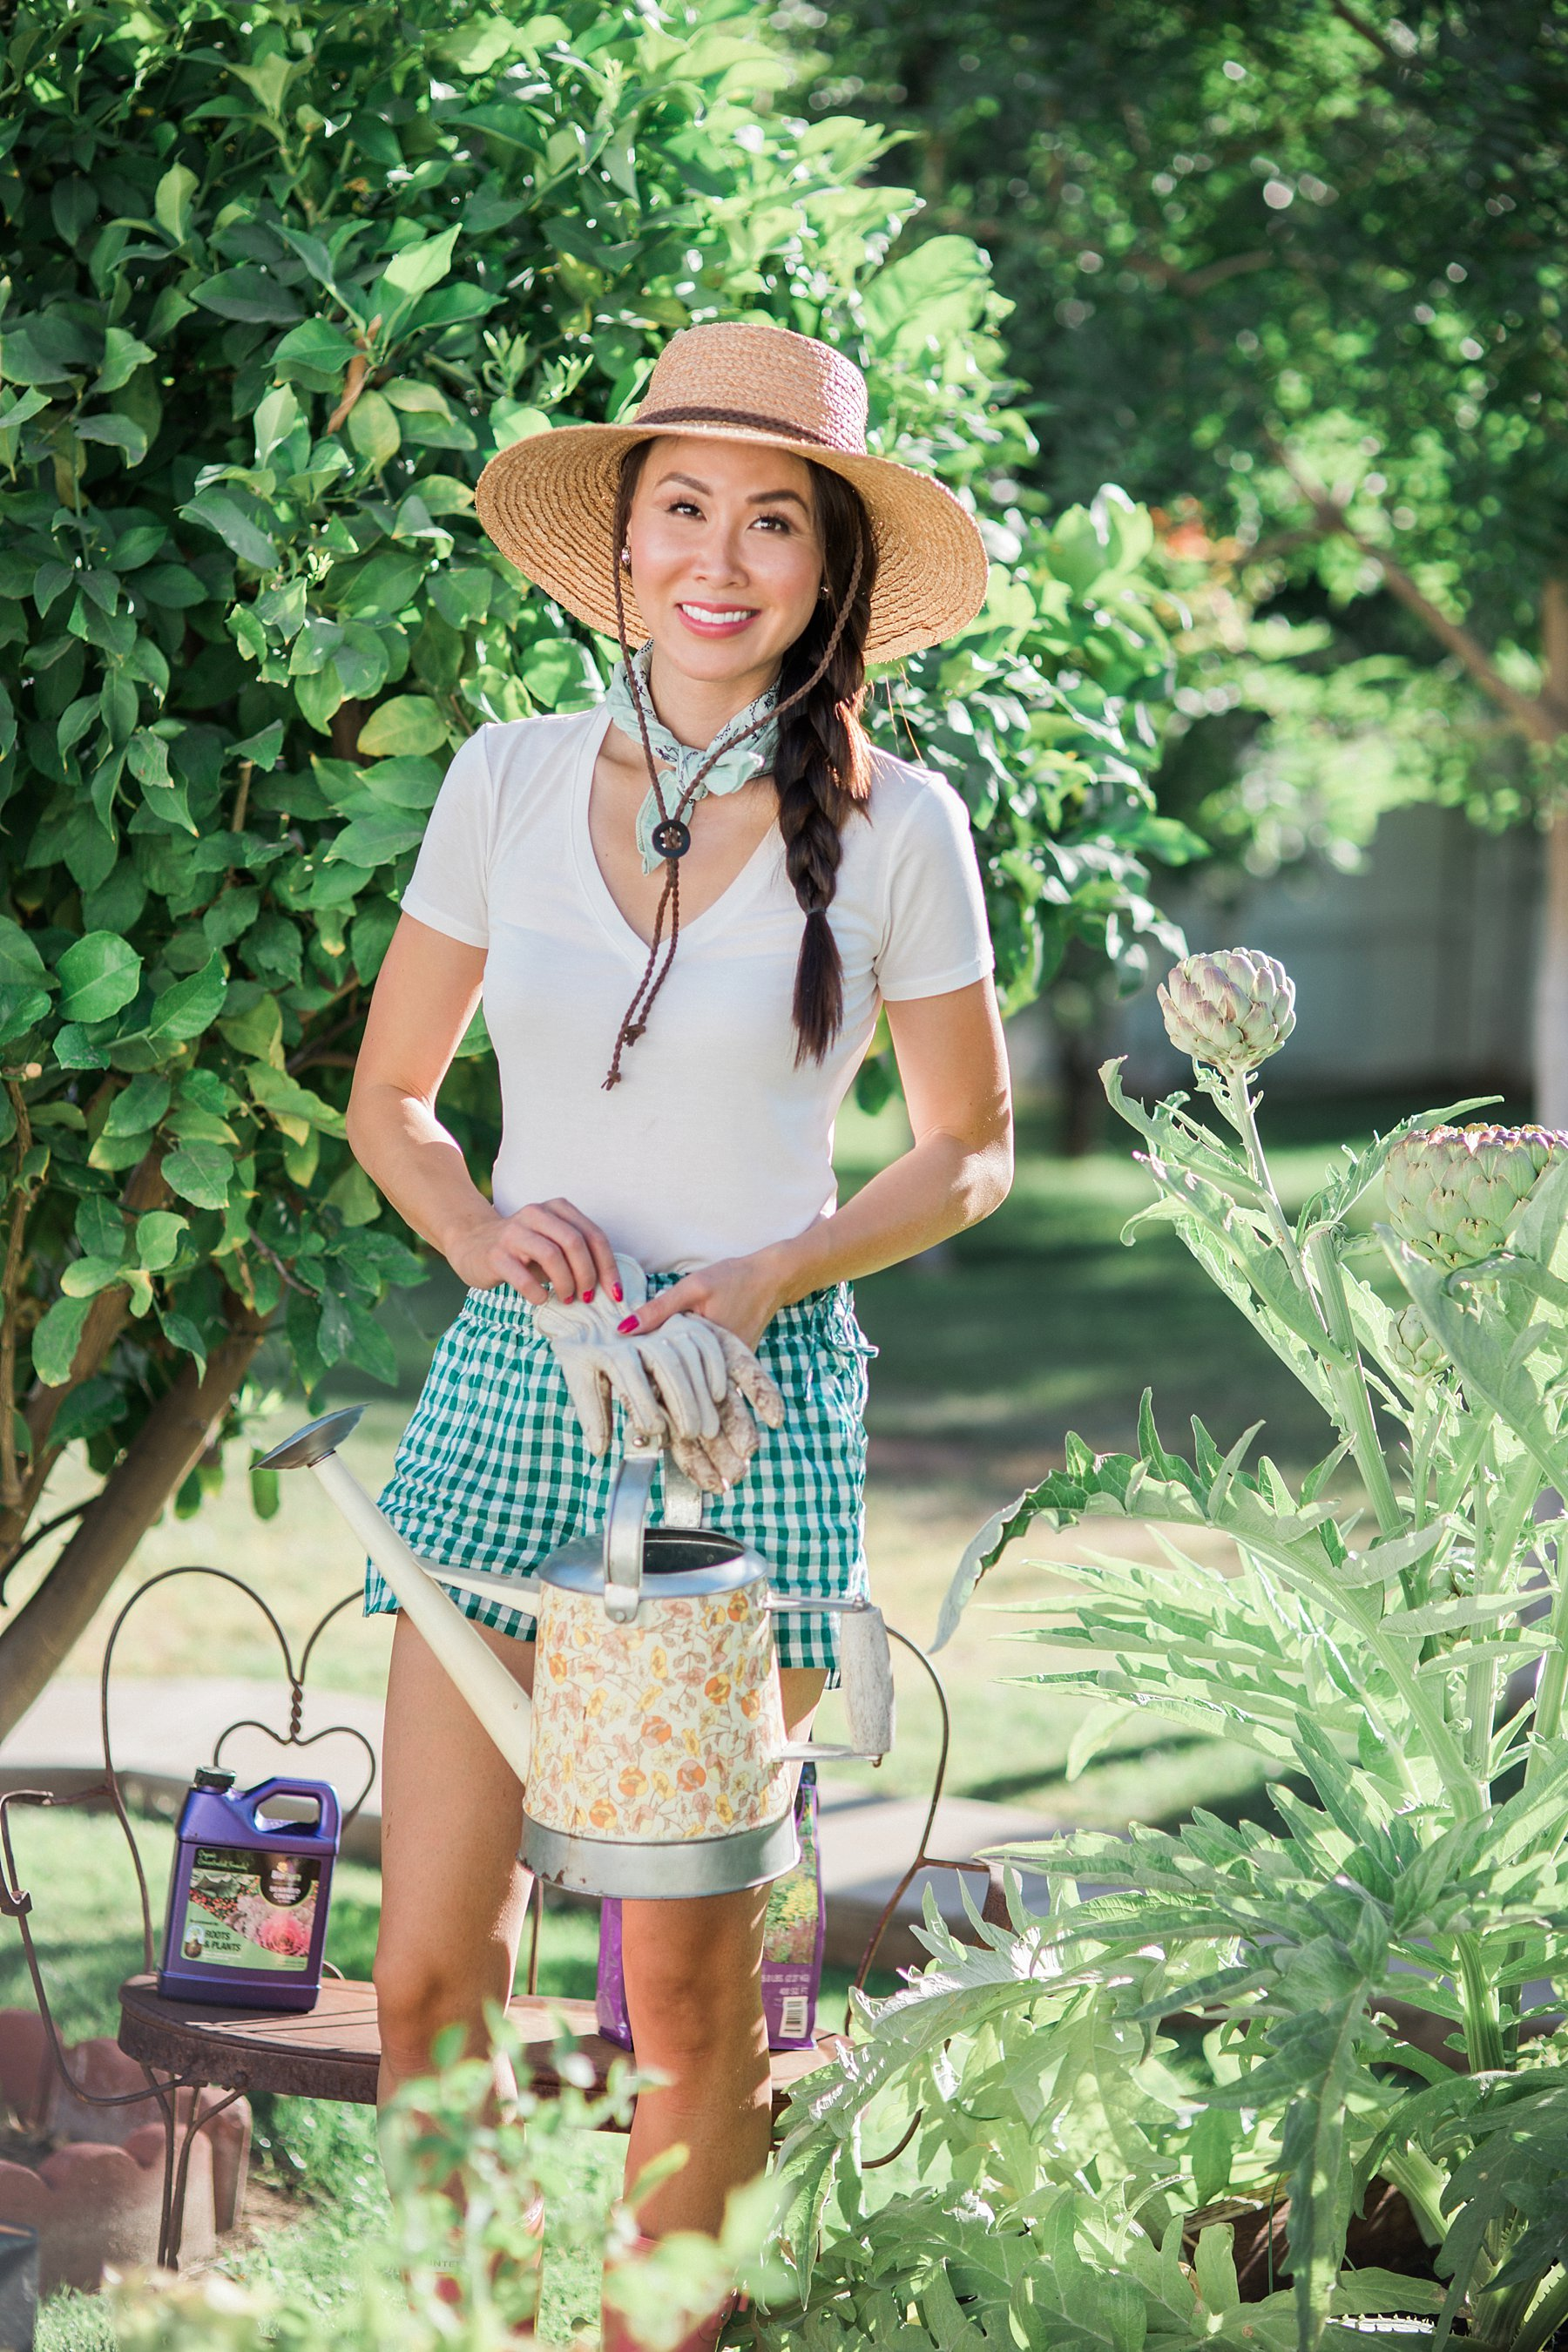 In the backyard garden with lifestyle blogger home and garden lover blogger: With BioFlora organic fertilization for gardens and shrubs and trees a review // about to water the raised garden beds